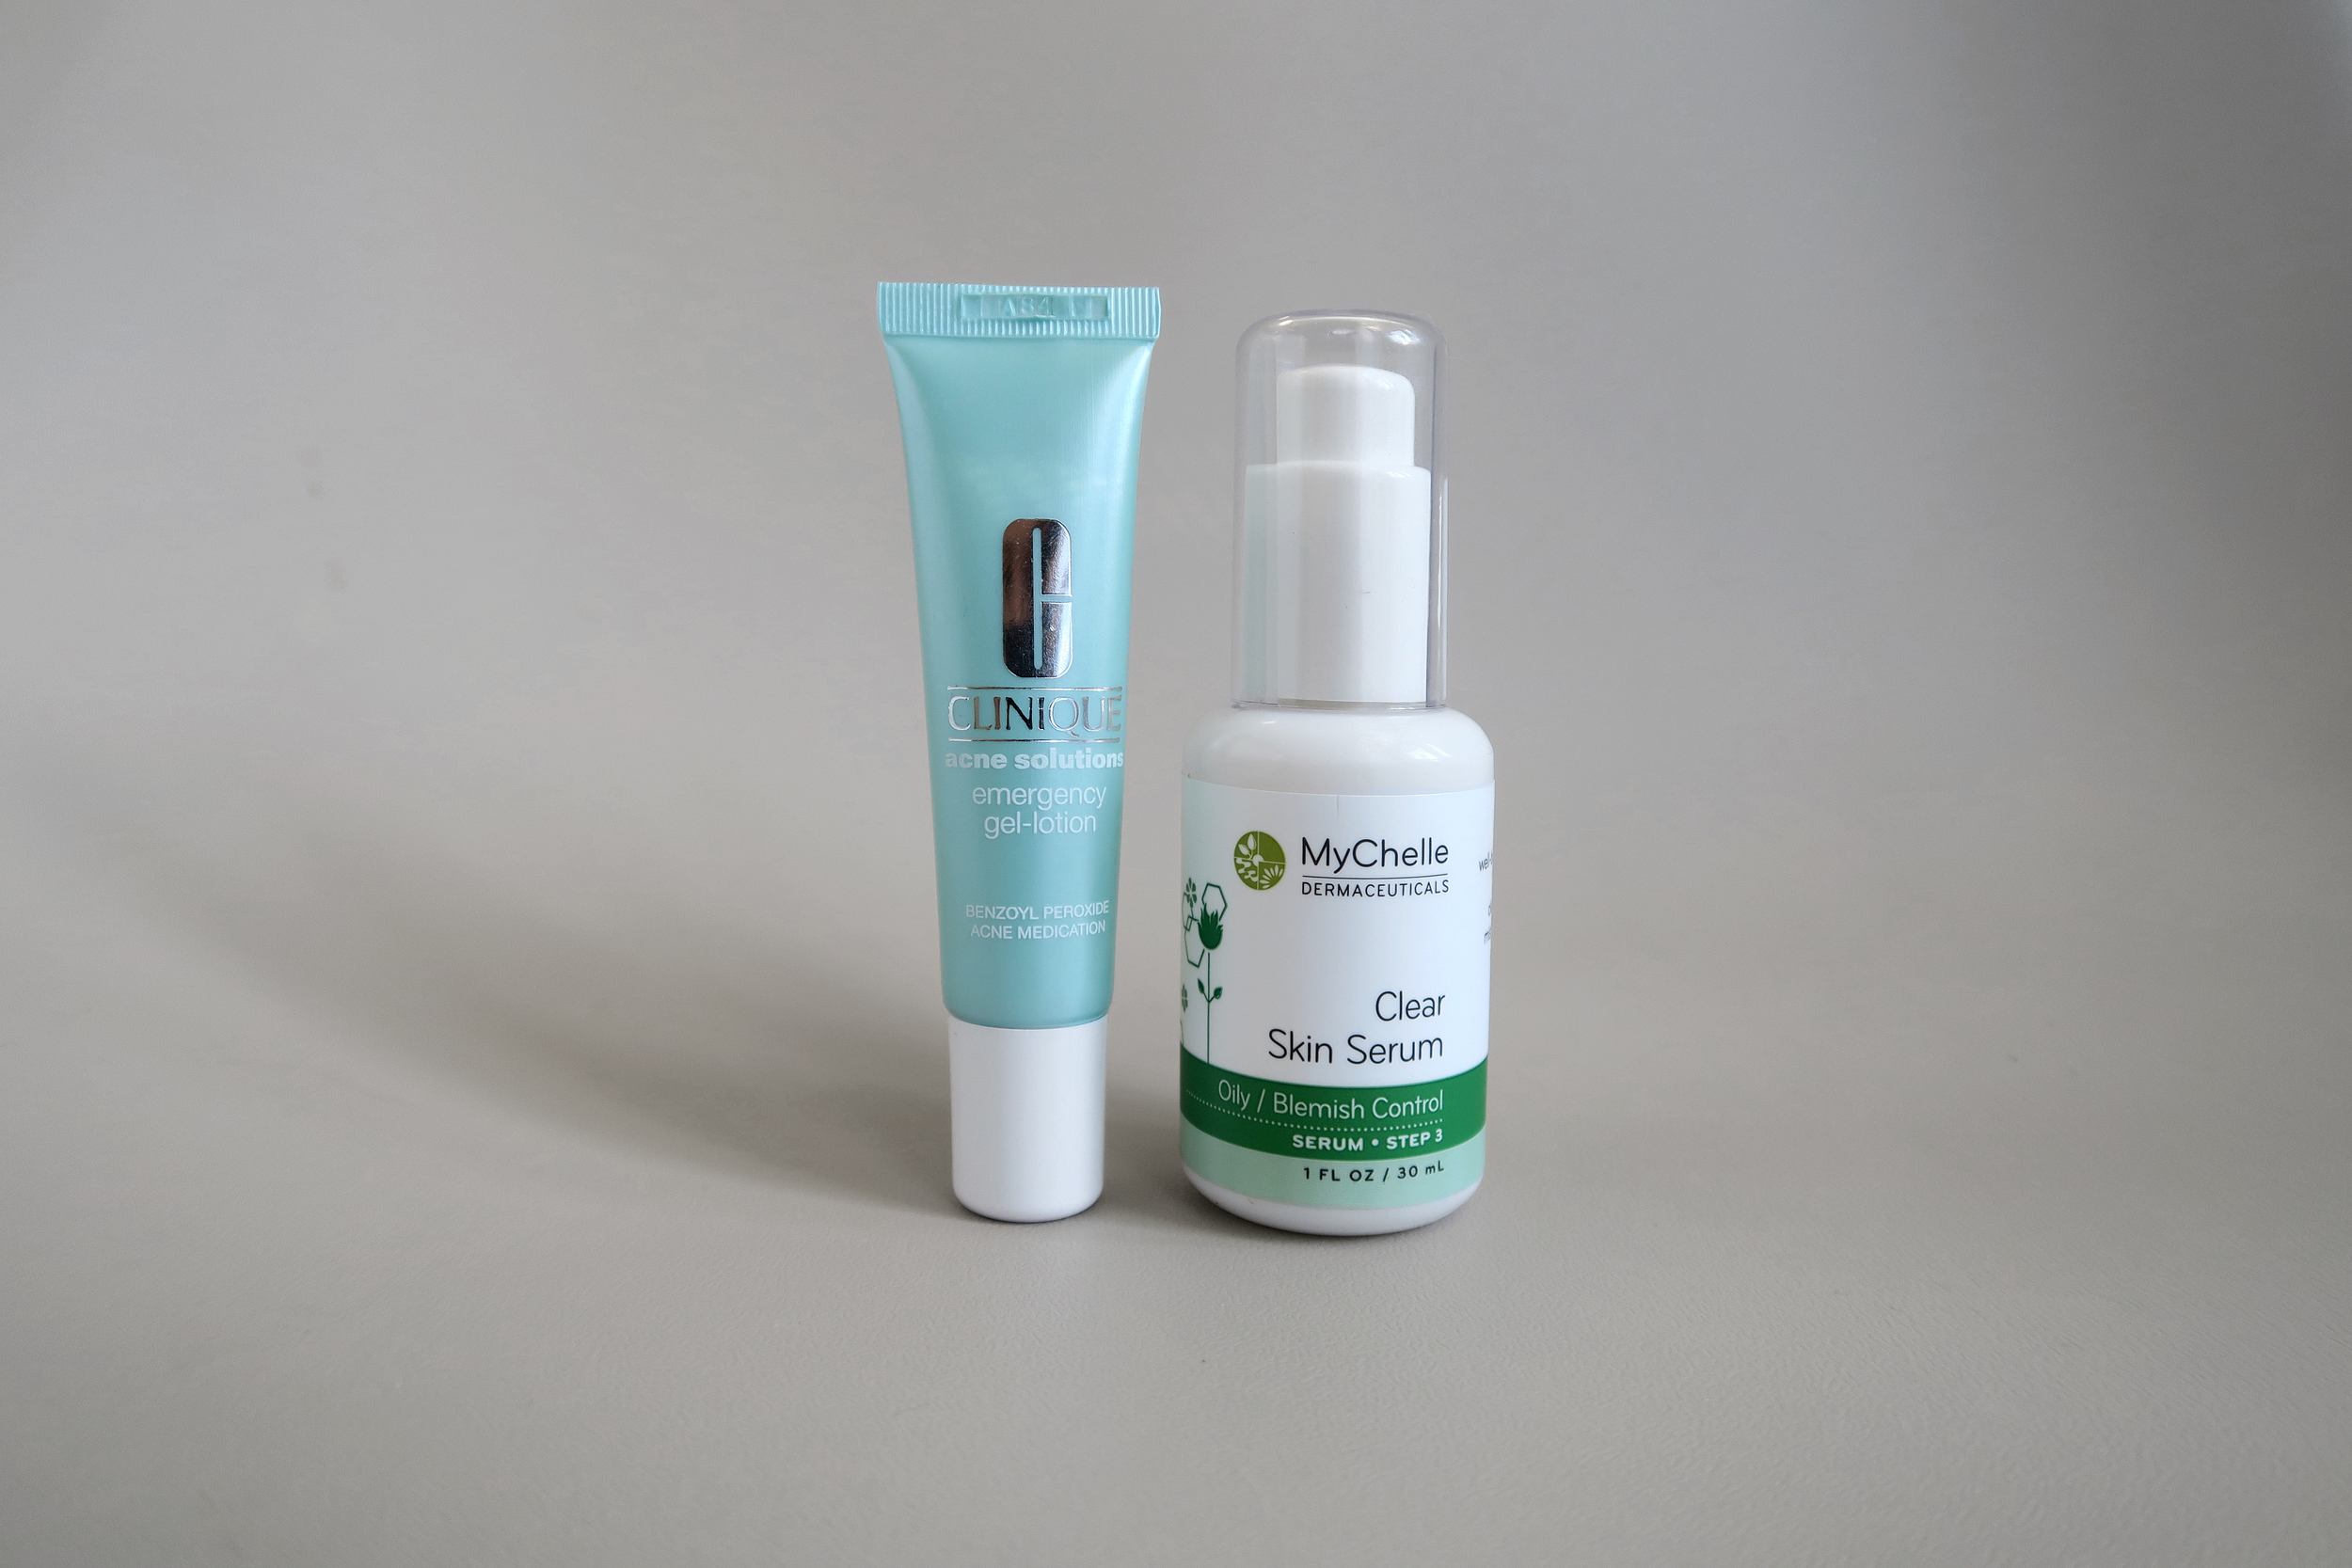 clinique emergency gel-lotion mychelle skin clear serum